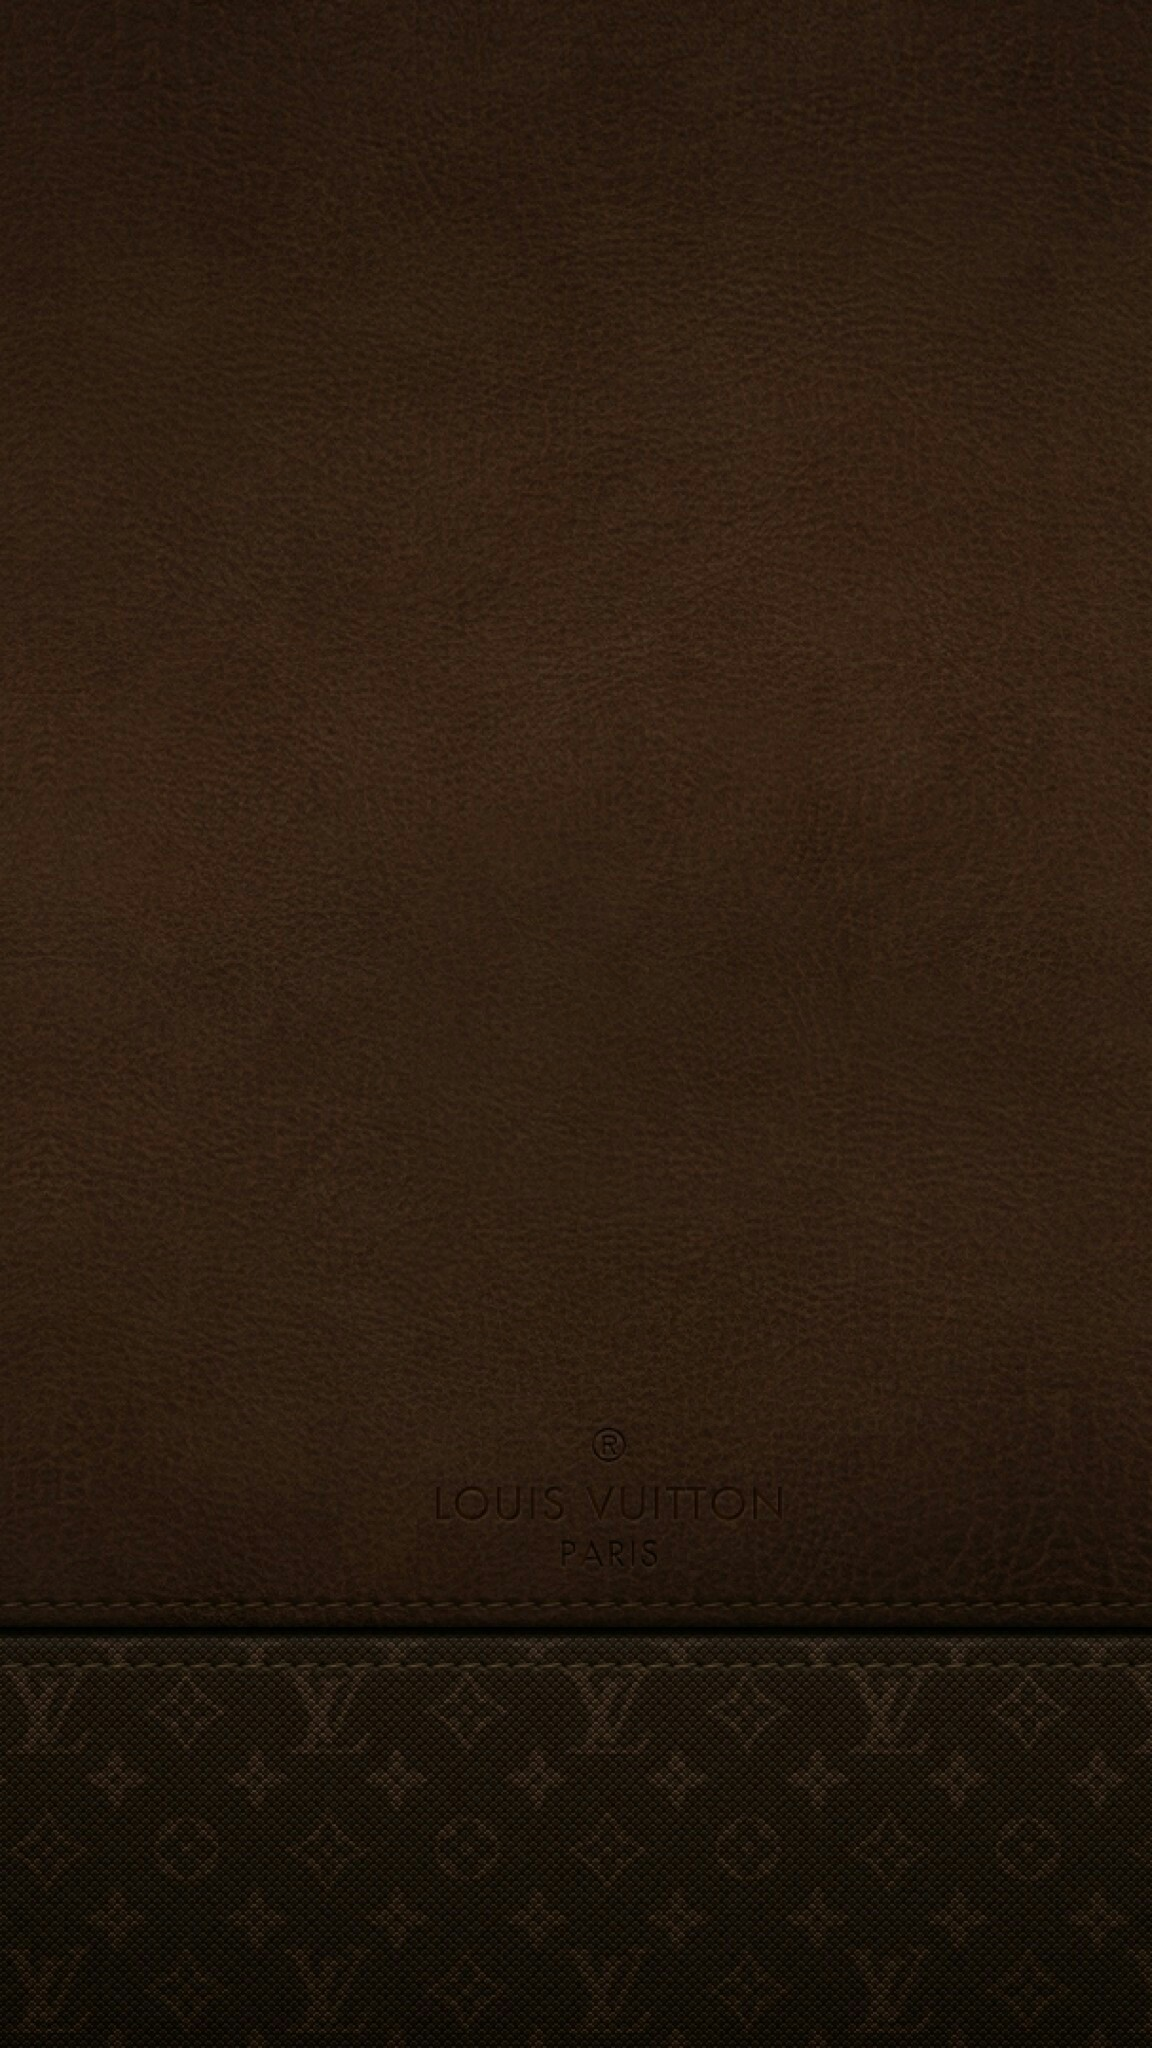 Brown Leather Wallpaper (47+ images)